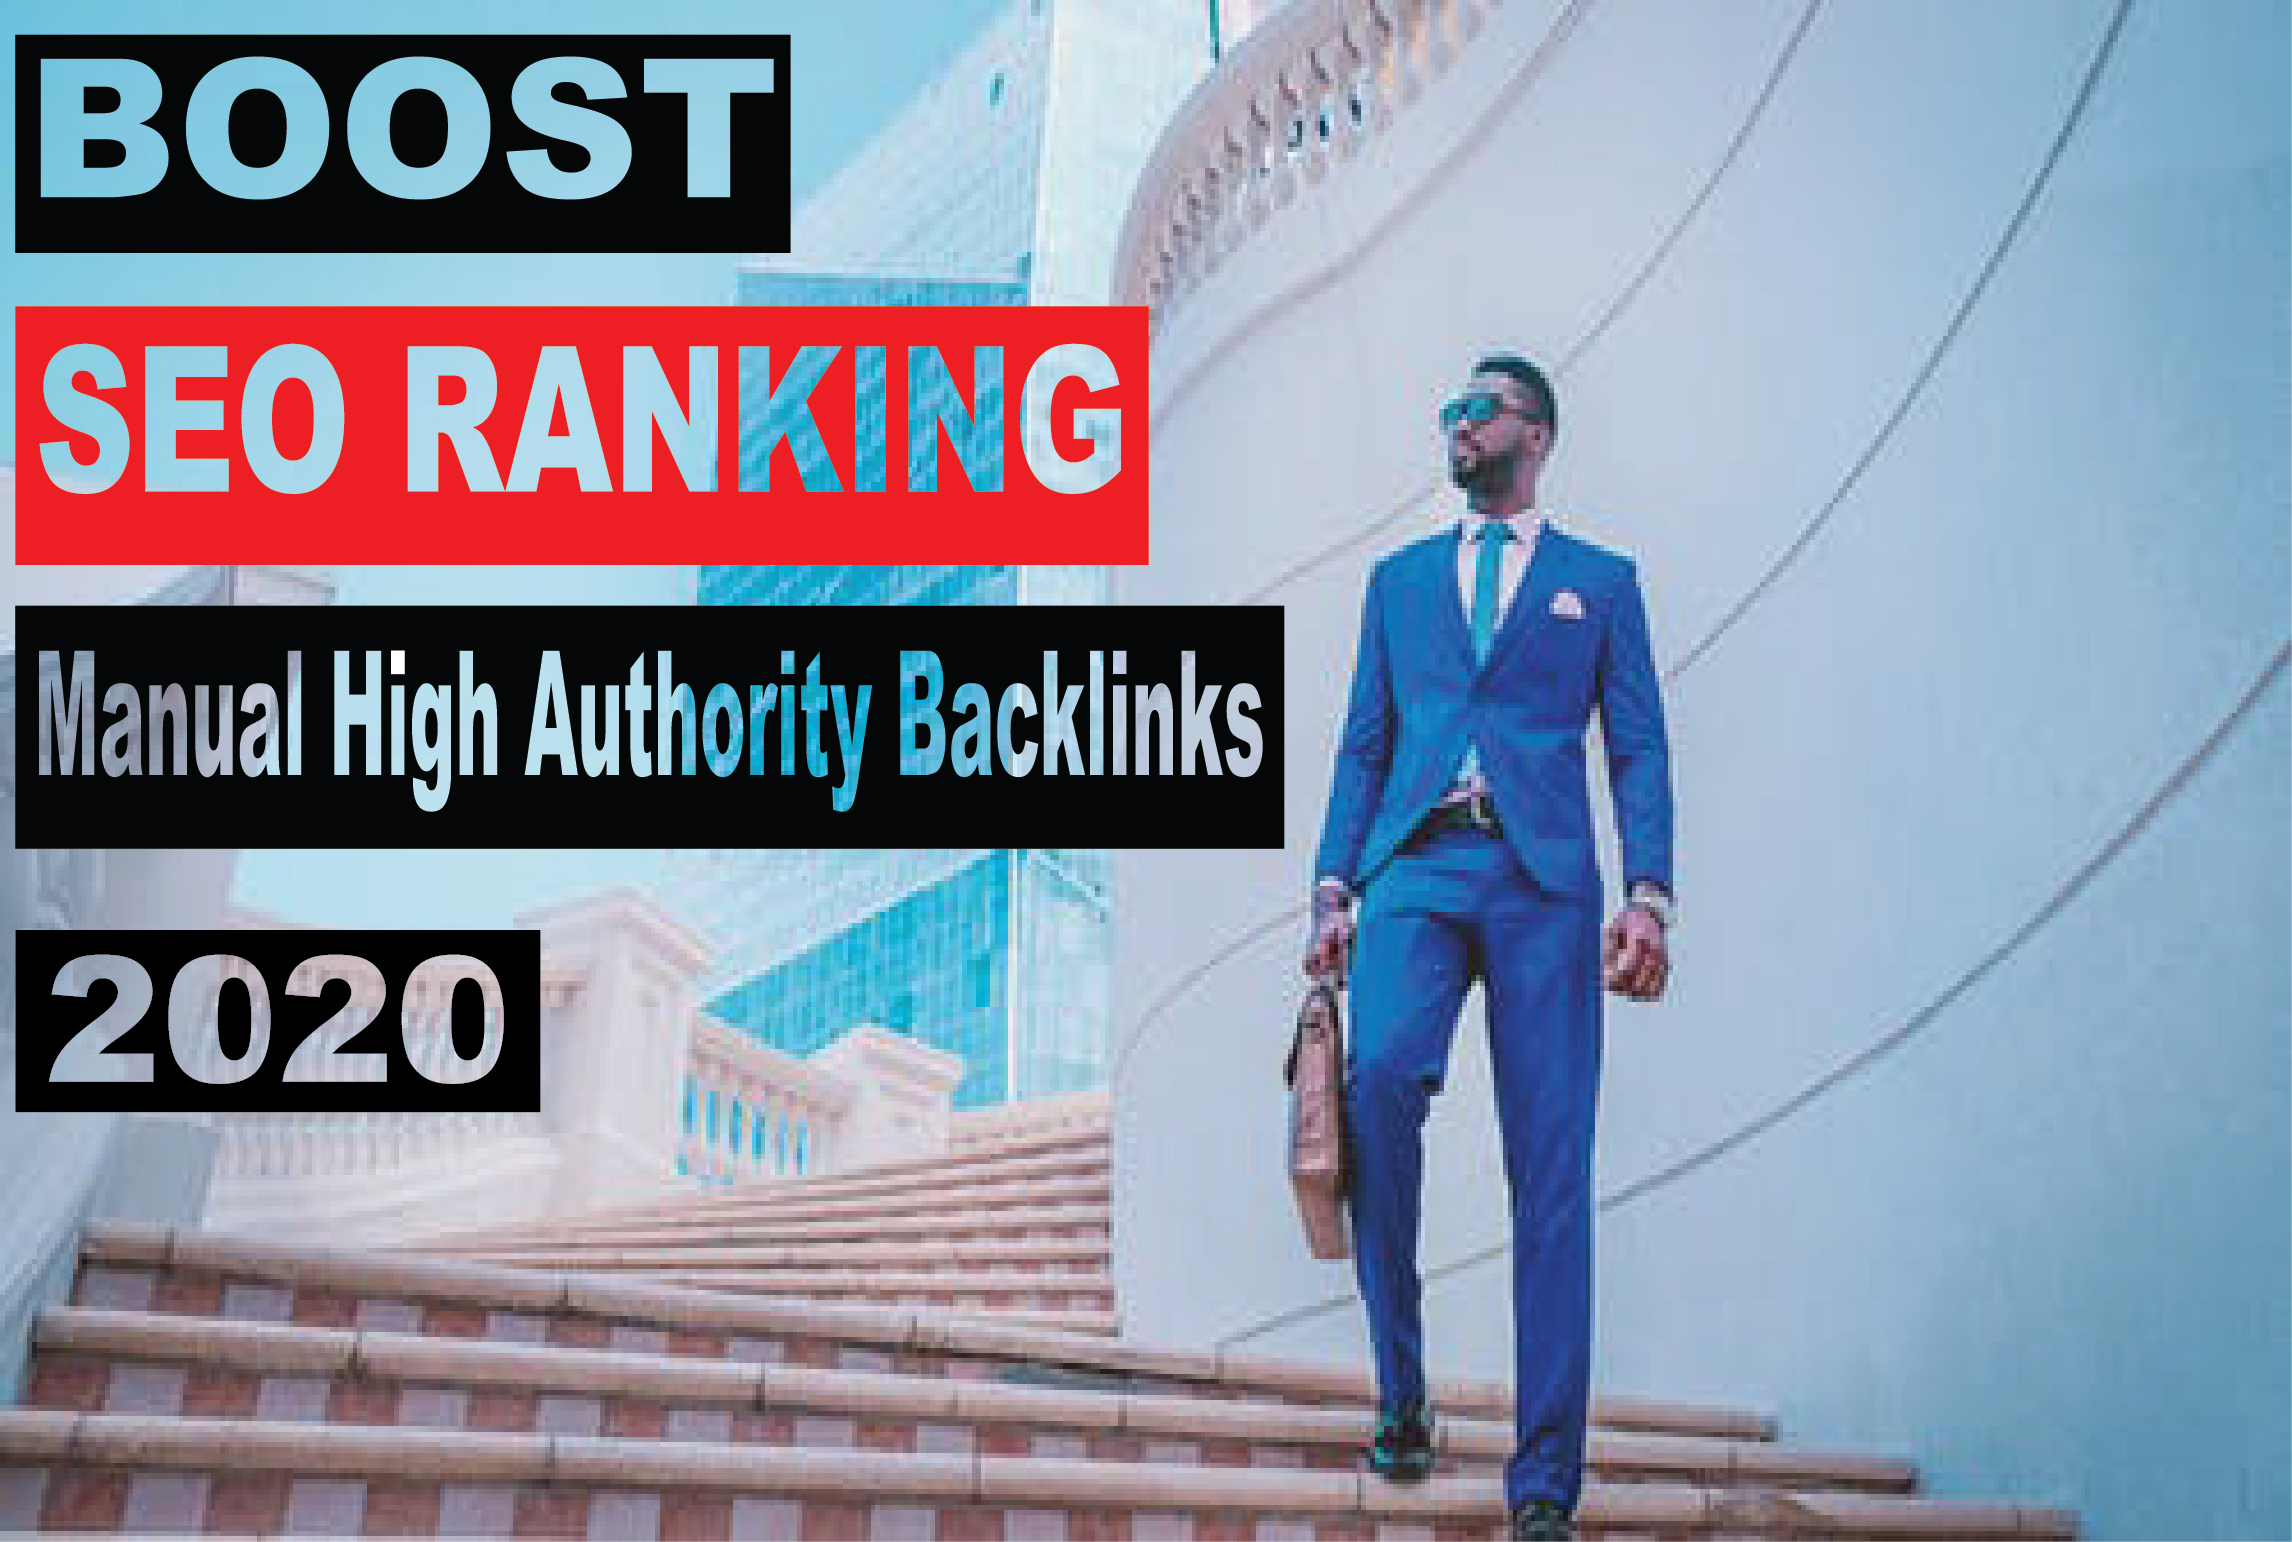 Boost Your Ranking on Google by Manual High Authority Dofollow SEO Backlinks 2020